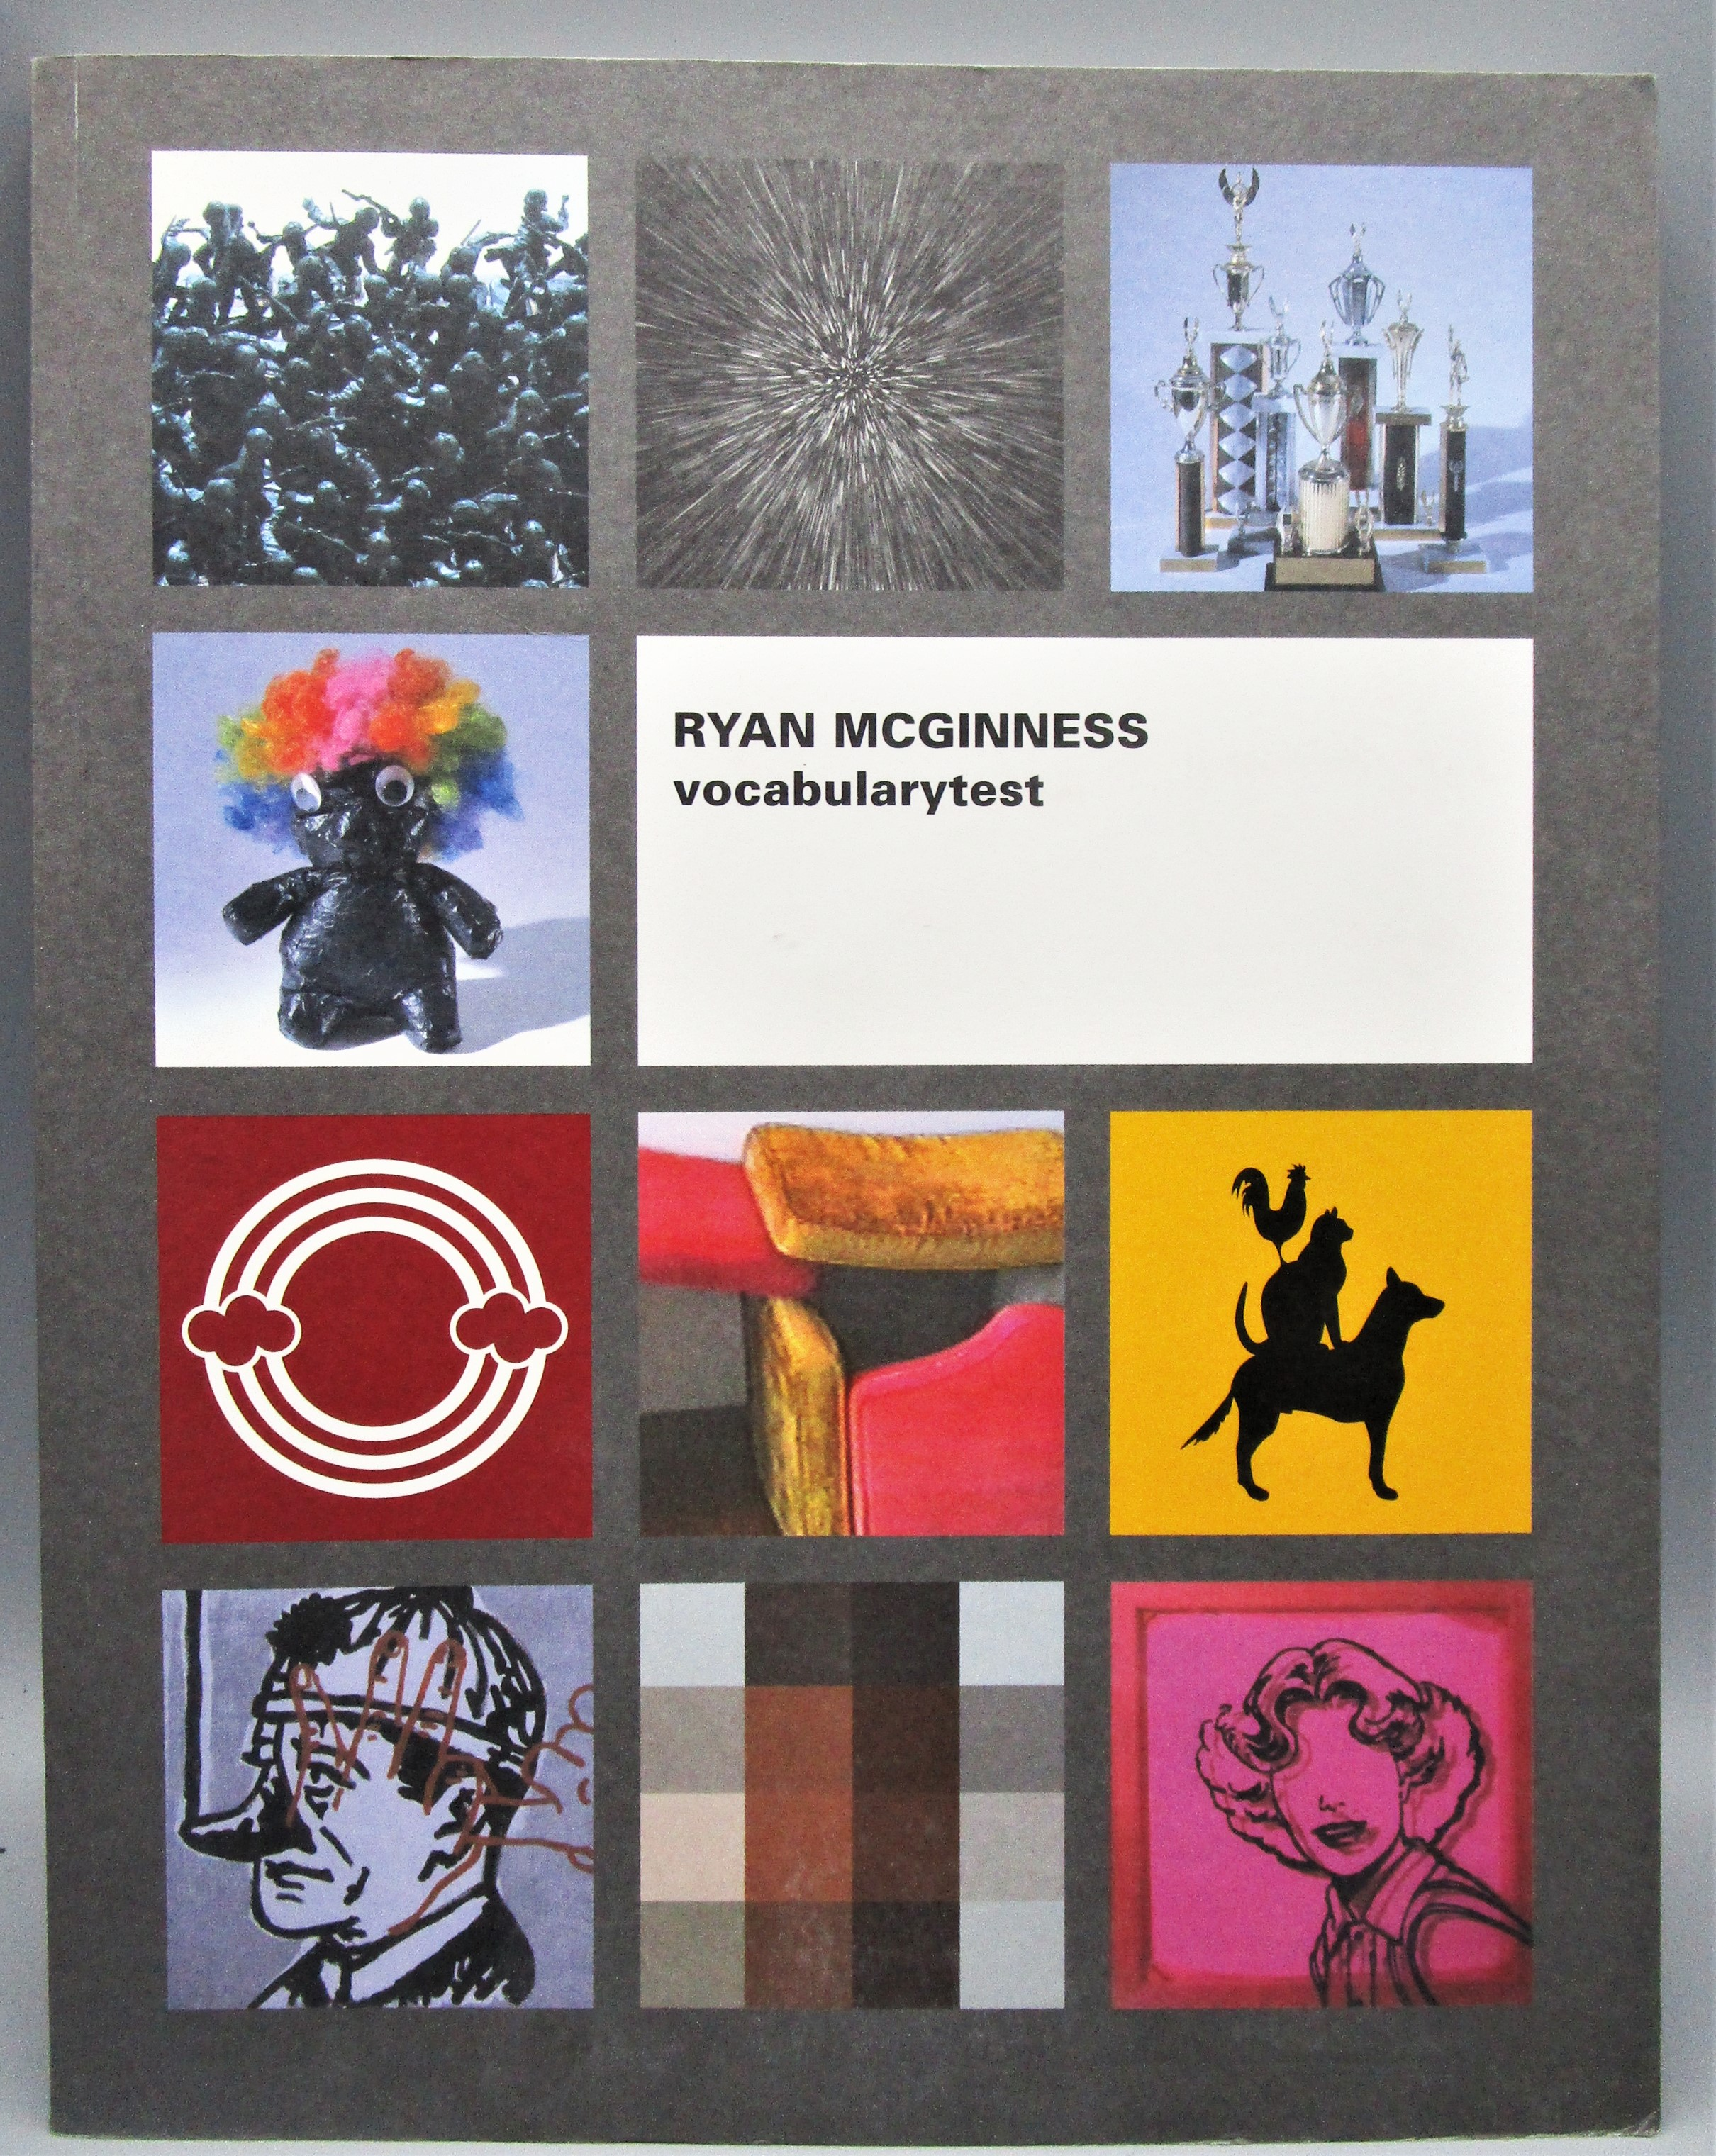 RYAN MCGINNESS: VOCABULARYTEST - 2001 [Ltd 1st Ed]